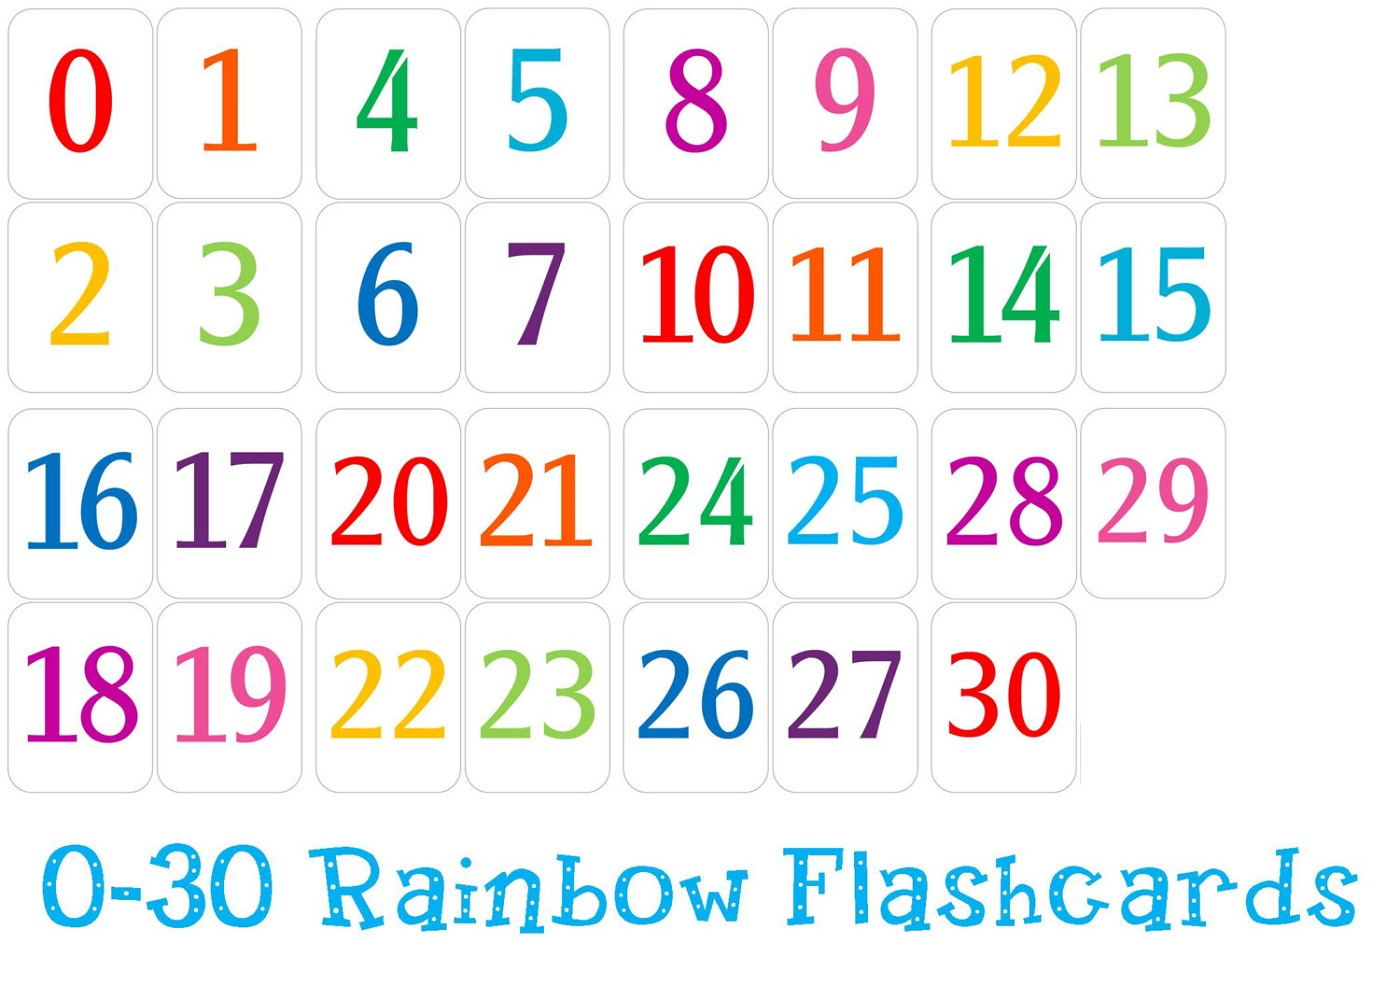 Worksheet Printable Numbers free printable number chart 1 30 activity shelter colorful